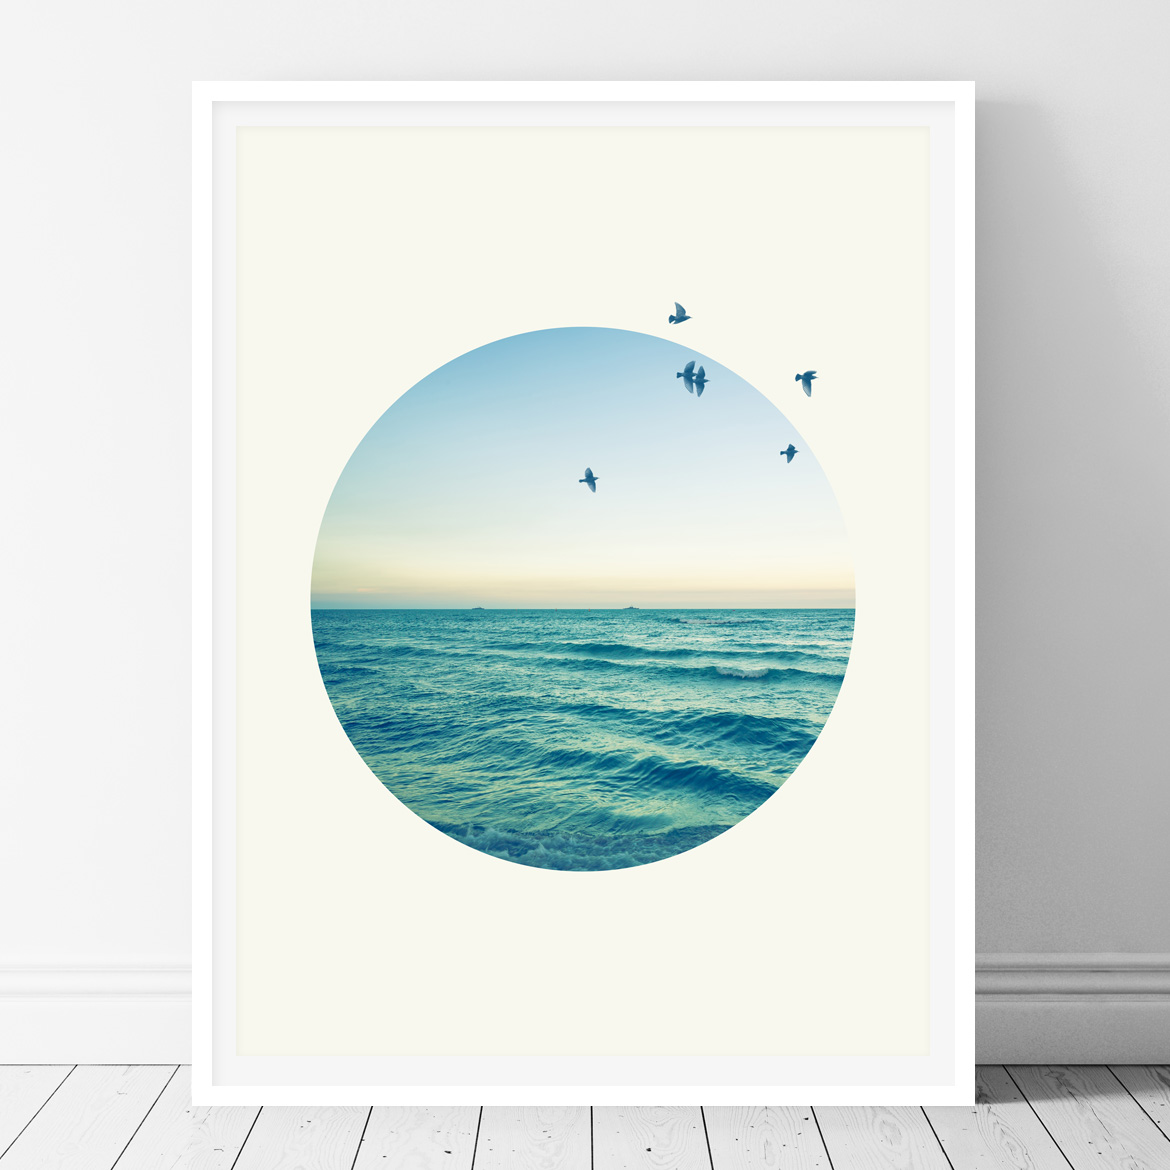 Sea in a circle - Printable wall art